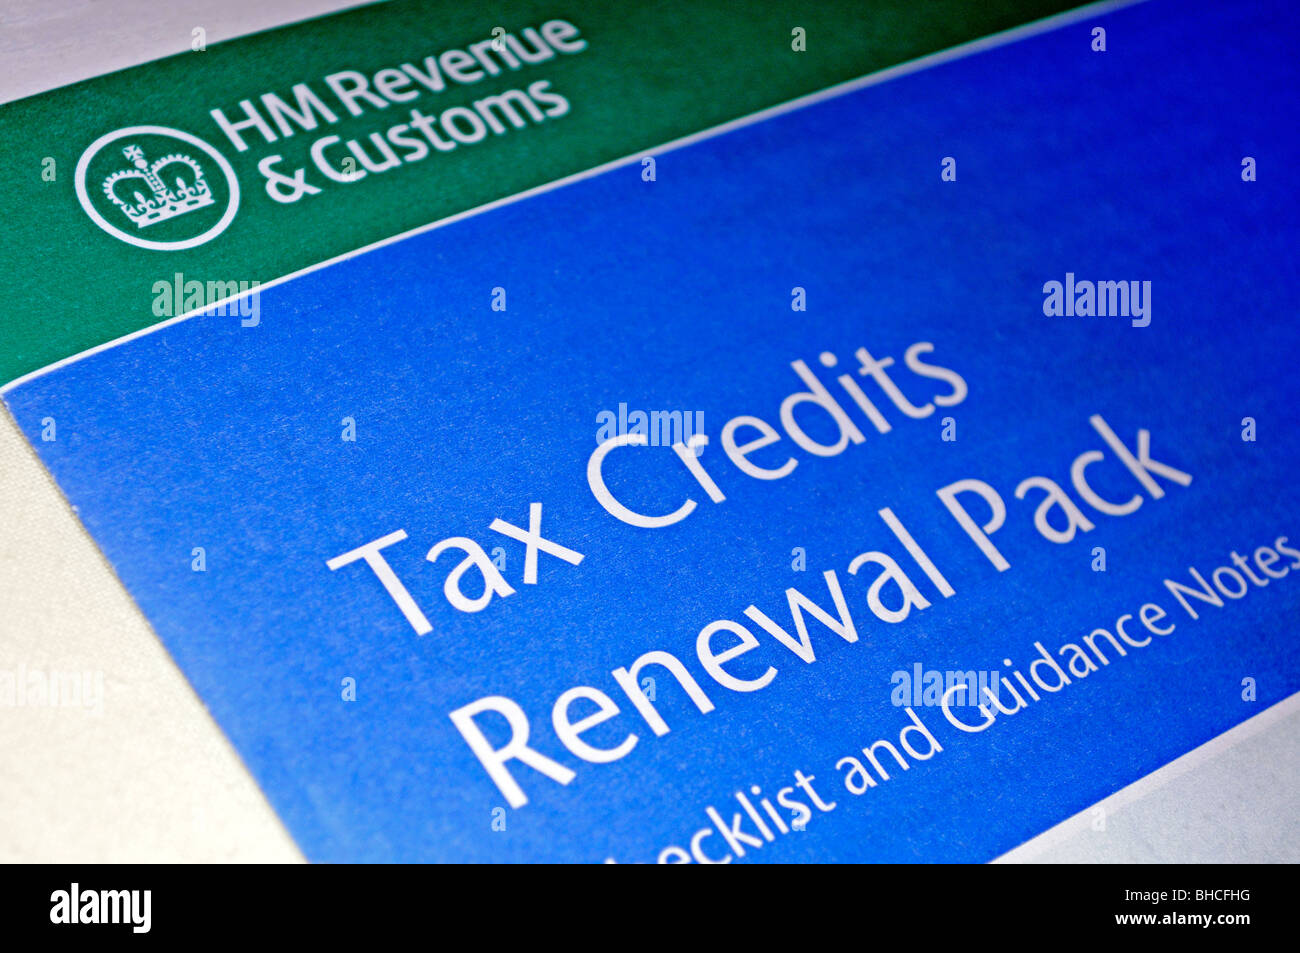 the hmrc  revenue tax credits renewal pack - Stock Image